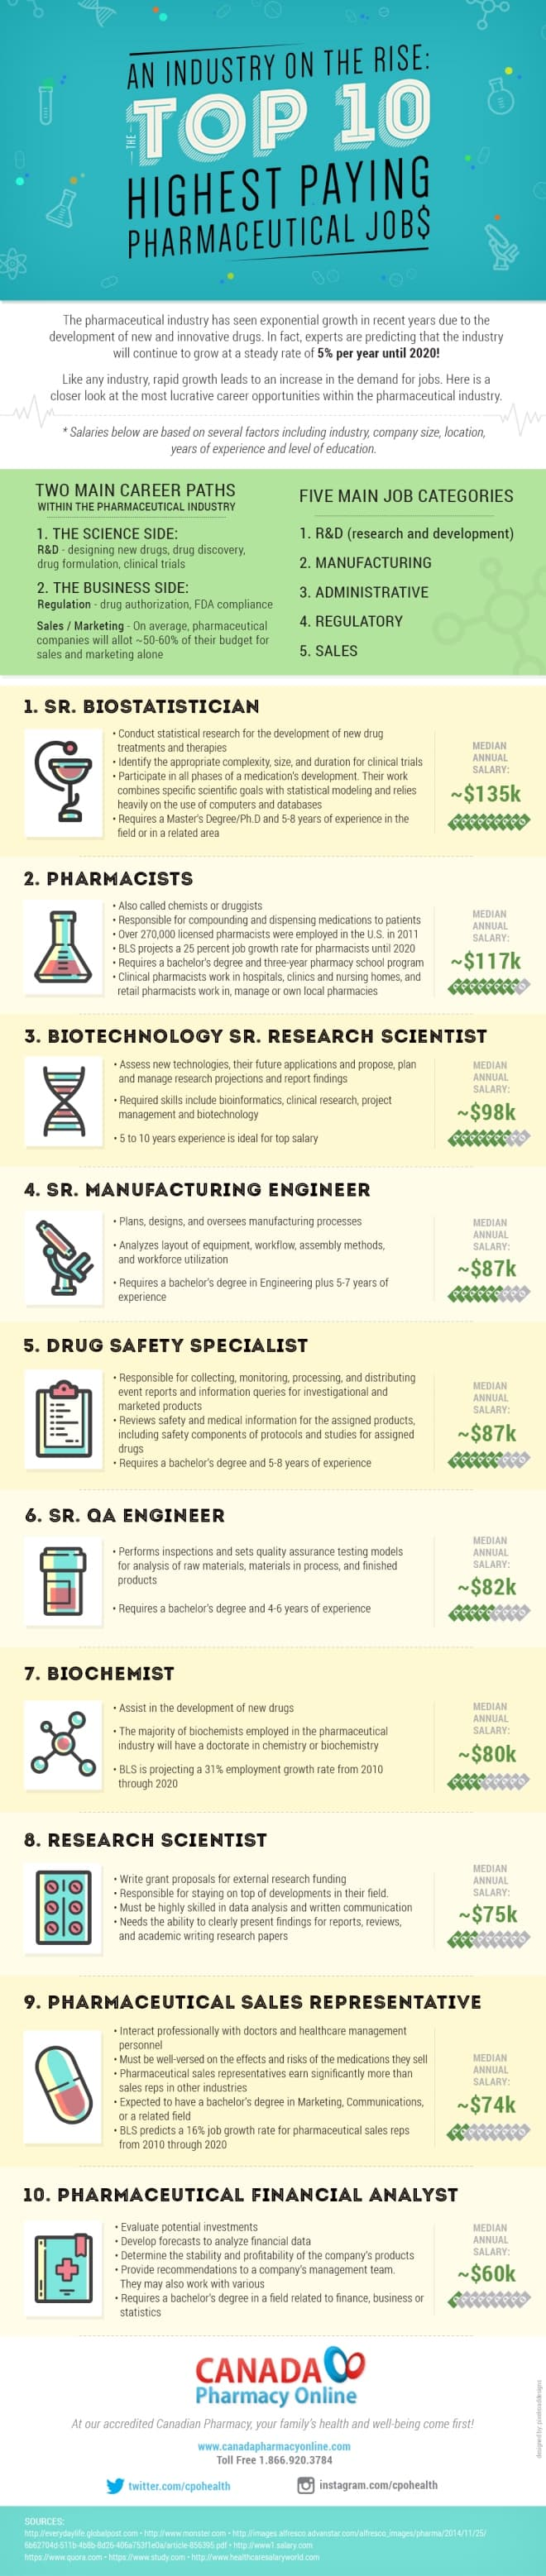 An Industry on the Rise: The Top 10 Highest Paying Pharmaceutical Jobs